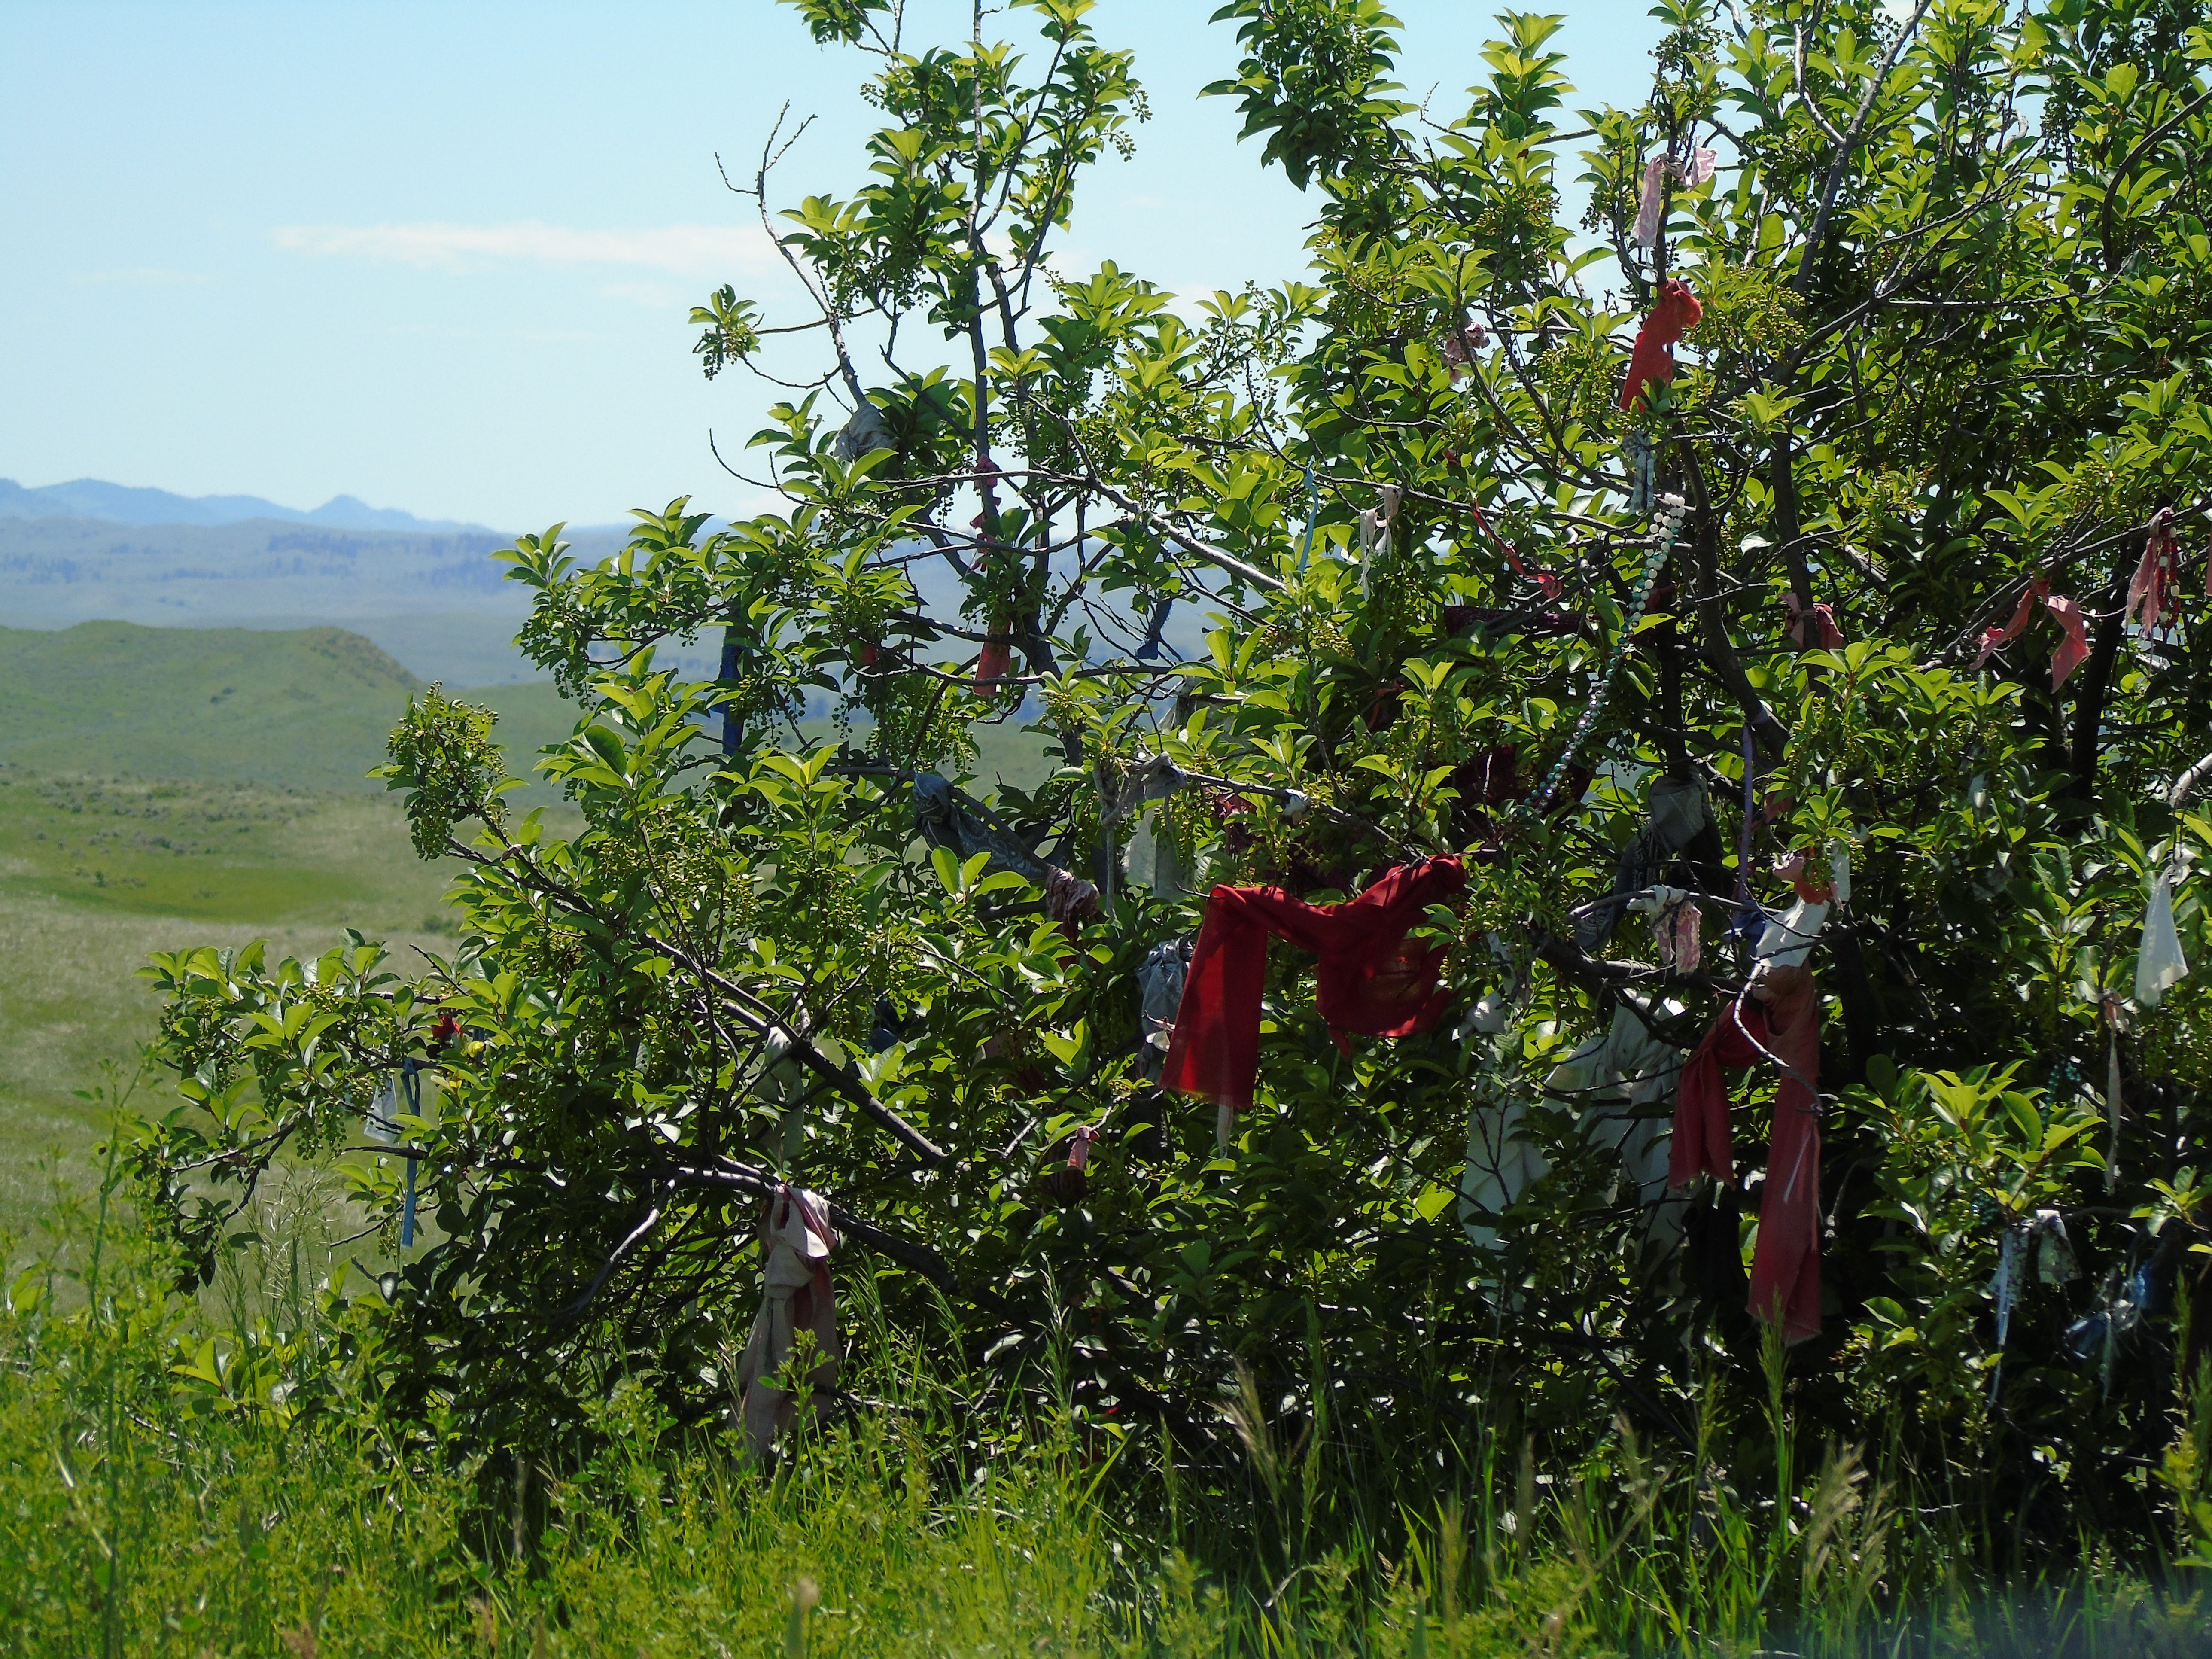 Native American prayer cloths tied to a bush at the Little Bighorn Battlefield near Crow Agency.